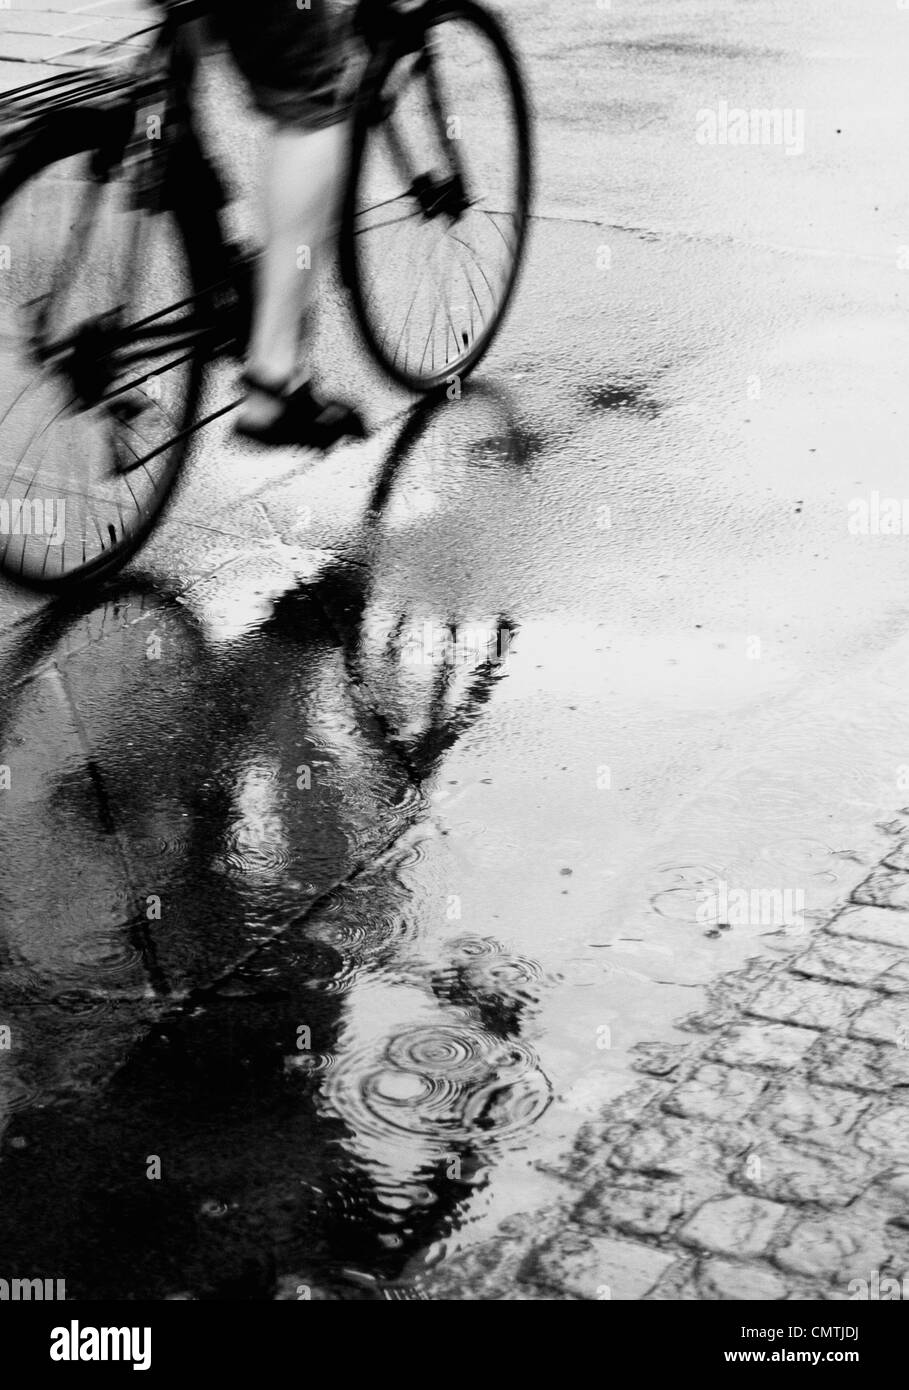 Bicycle on street - Stock Image